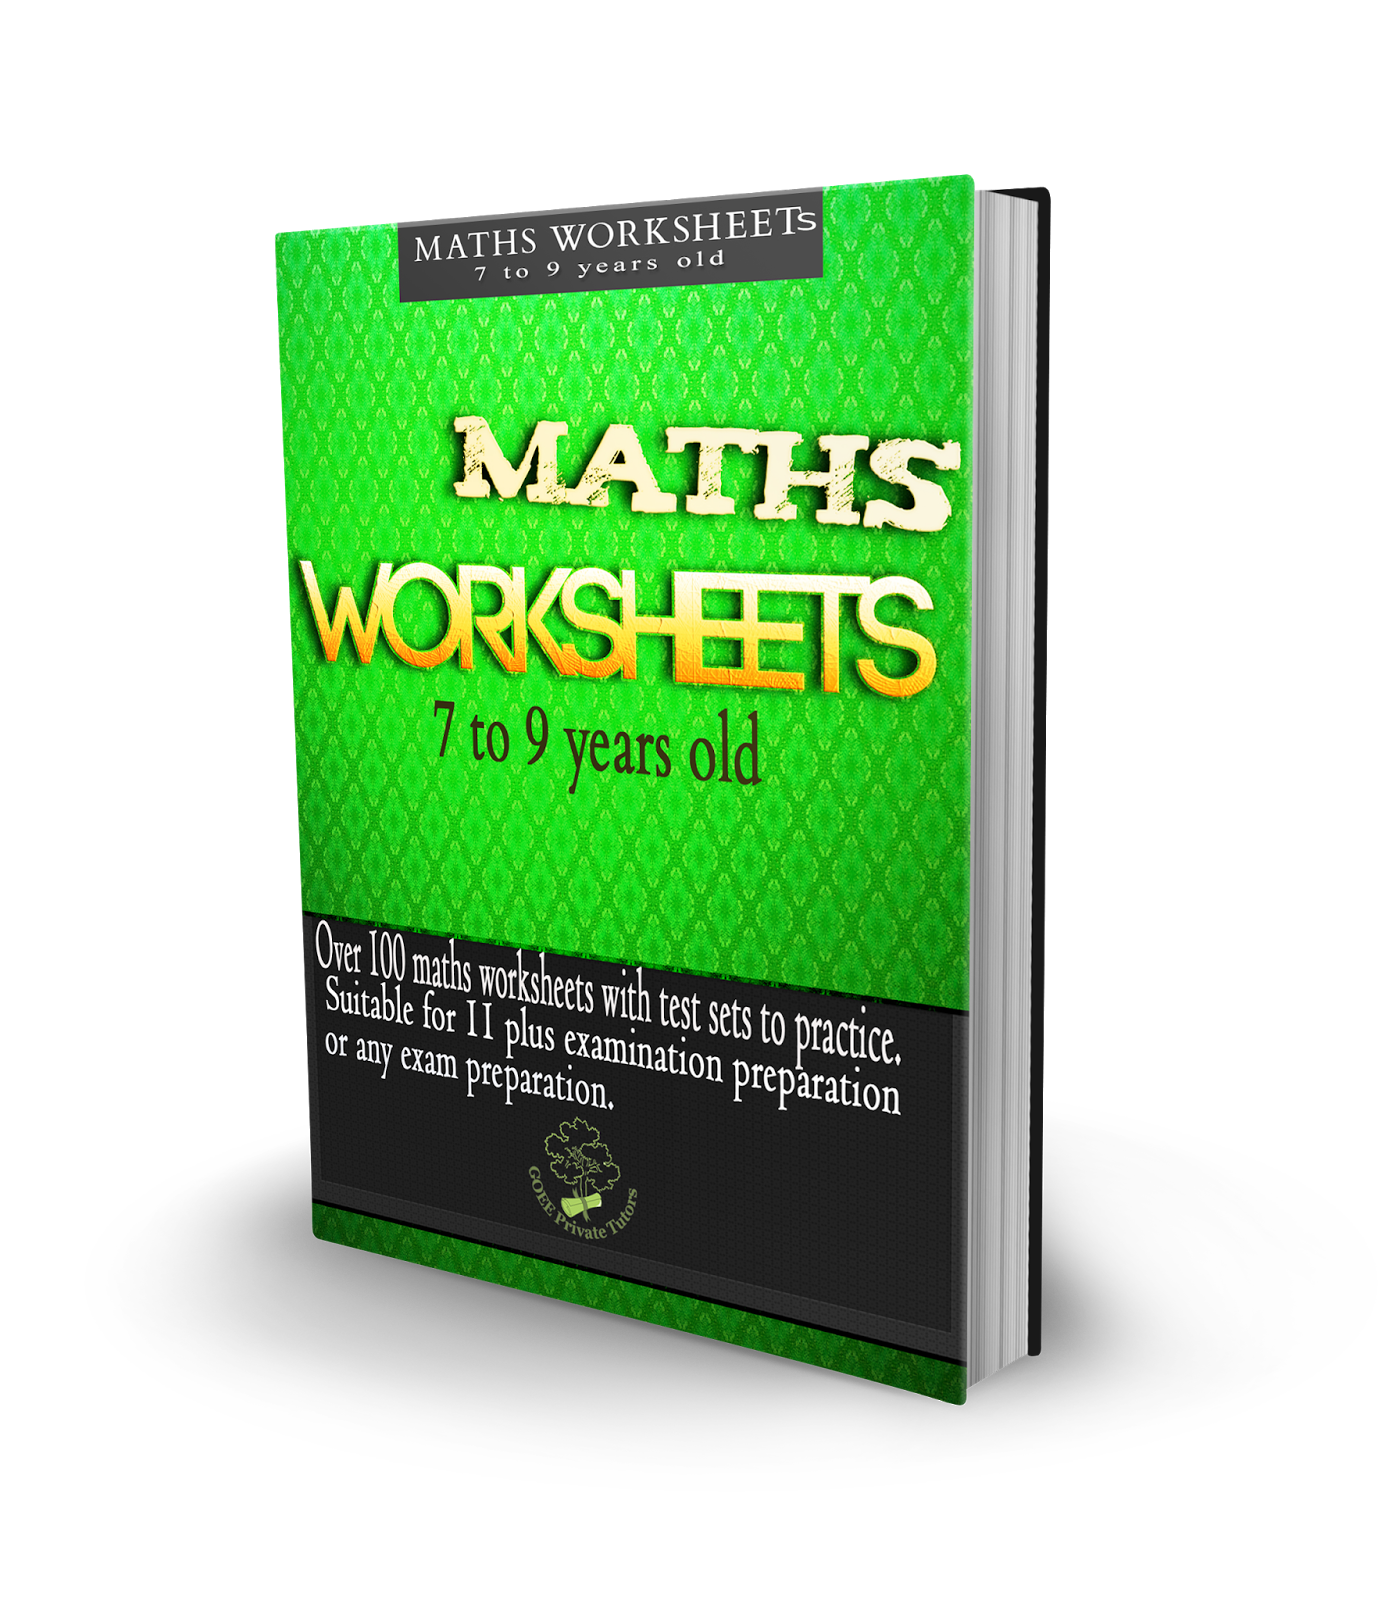 Printables Where Do Teachers Get Their Worksheets andis books for parents teachers maths worksheets 7 to 9 how do you get your child the higher levels in their class and remain there year after are over 50 wor